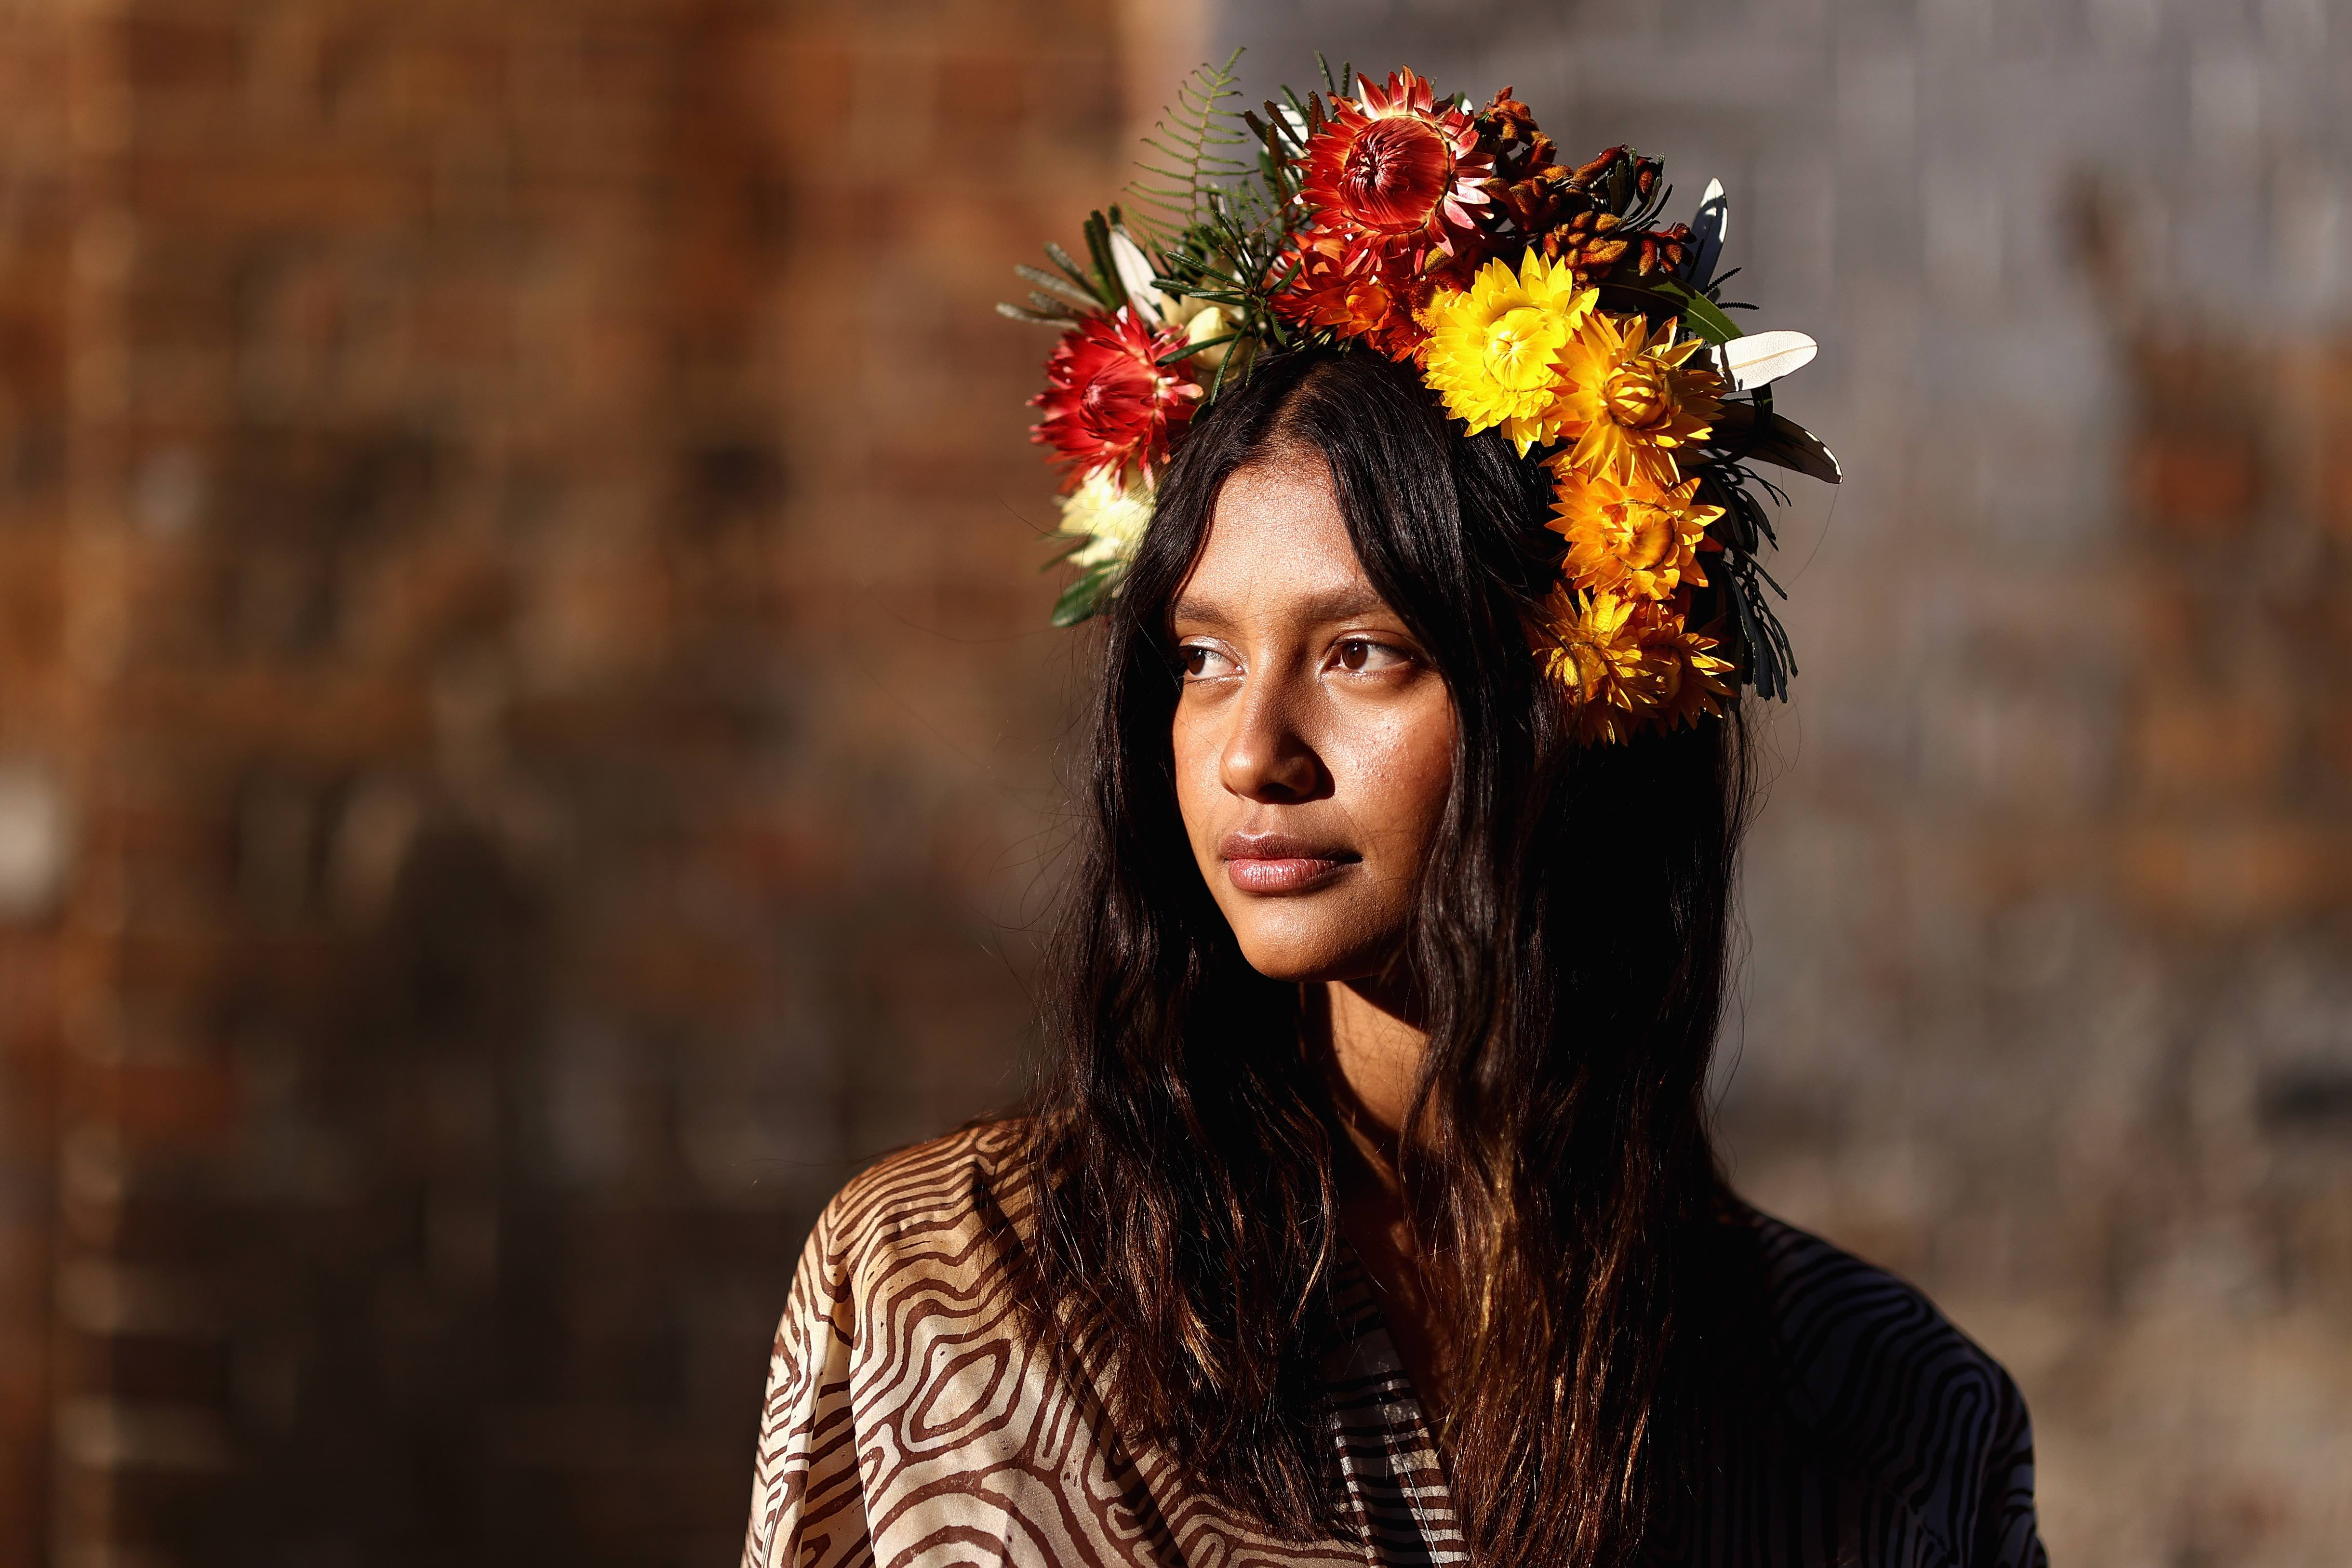 SYDNEY, AUSTRALIA - MAY 31: Indigenous model Lisa Fatnowna poses at the Welcome To Country for Afterpay Australian Fashion Week 2021 at the Blacksmith's Workshop, Carriageworks on May 31, 2021 in Sydney, Australia. (Photo by Cameron Spencer/Getty Images)